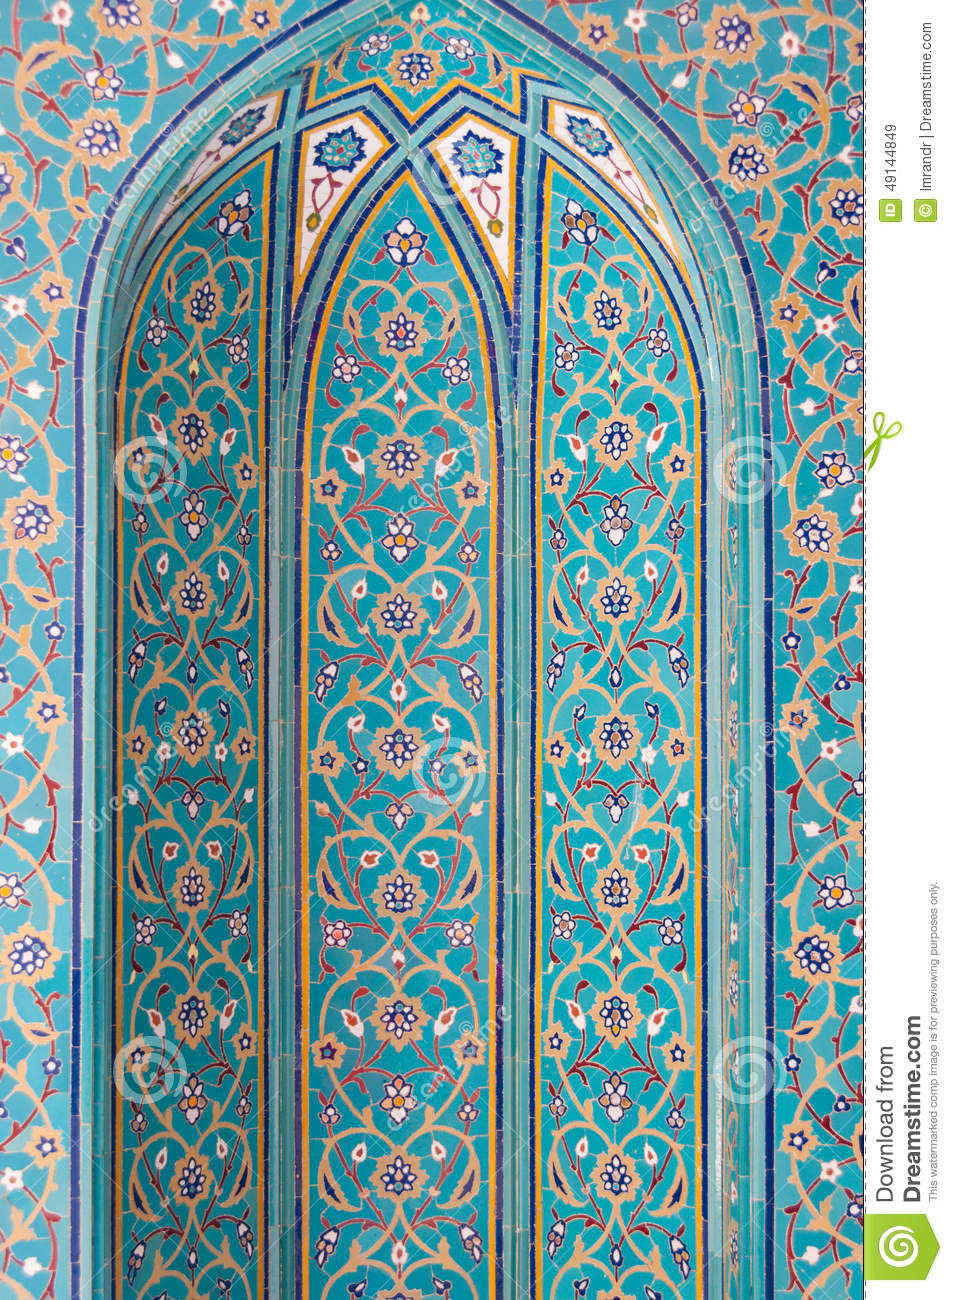 Mosaic Tiles Of Middle Eastern Architecture Stock Photo - Image ...